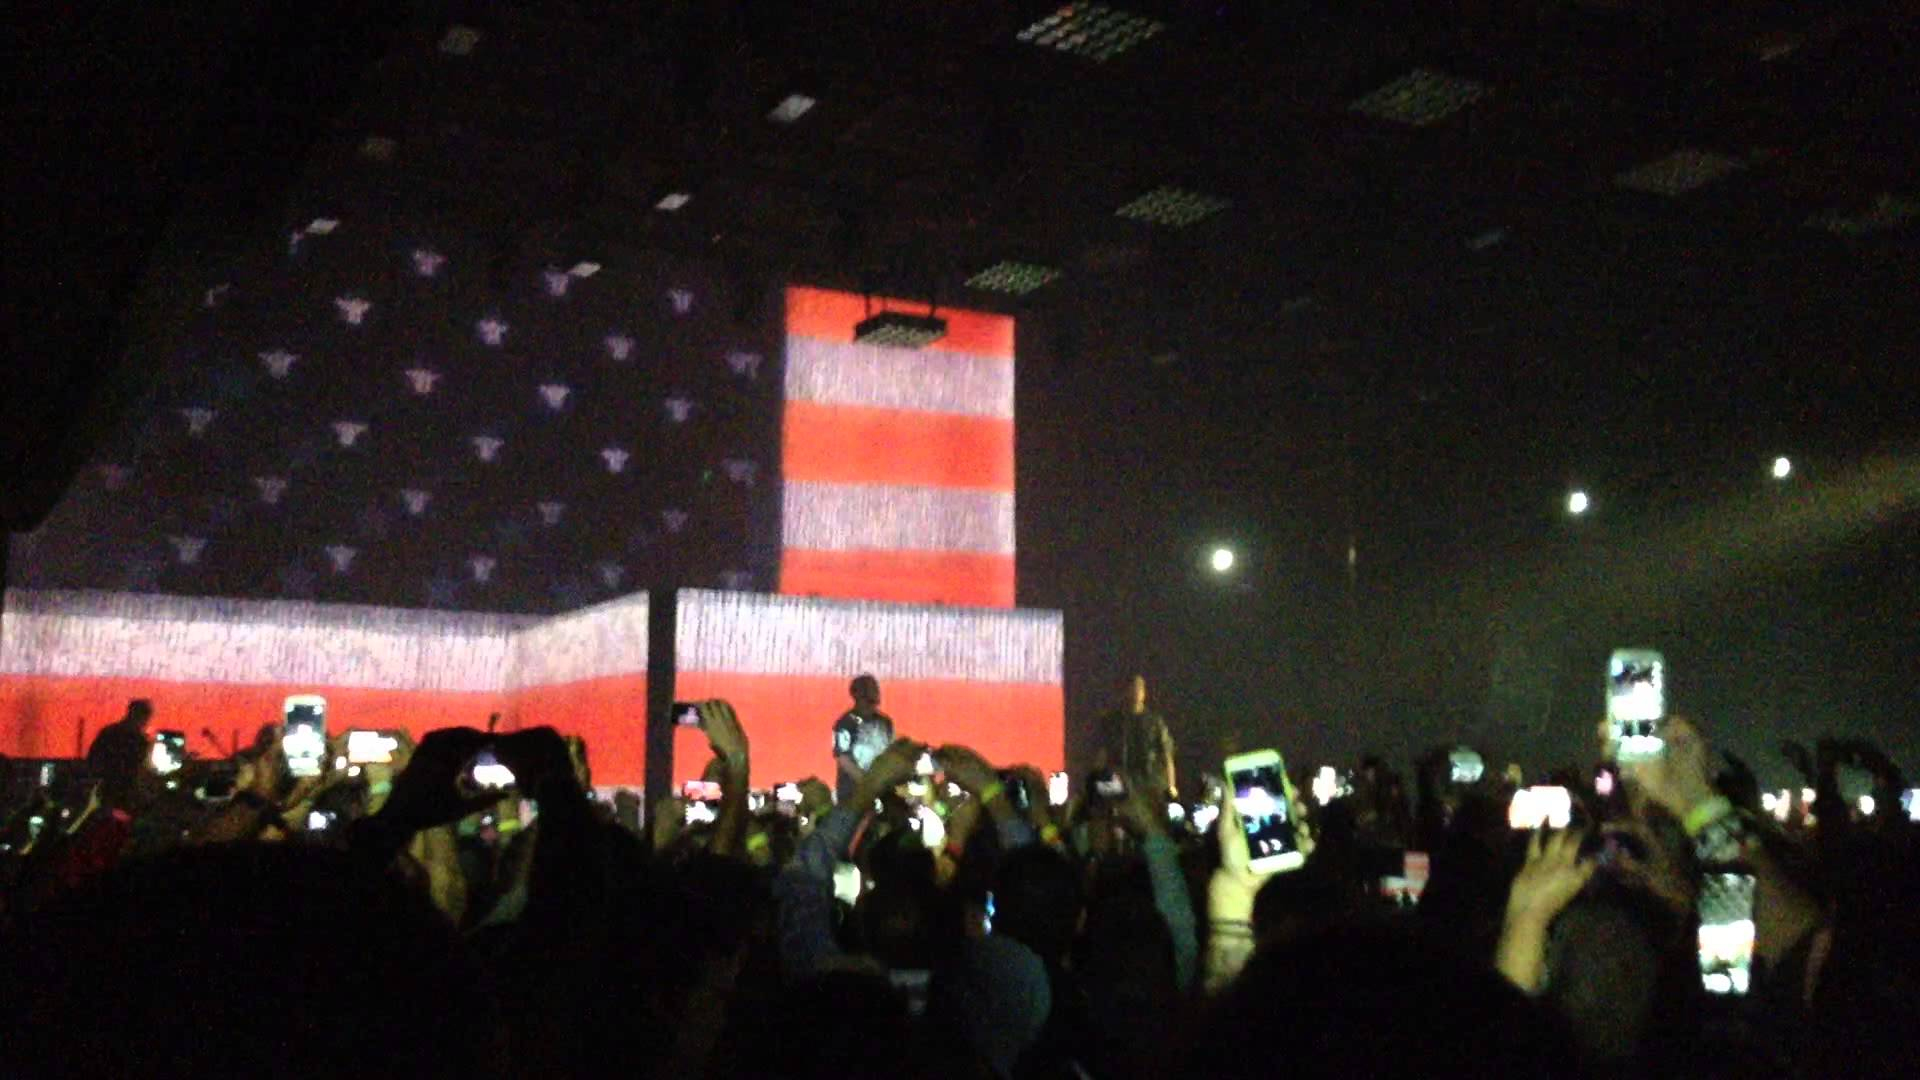 Jay Z & Kanye West Perform At SXSW